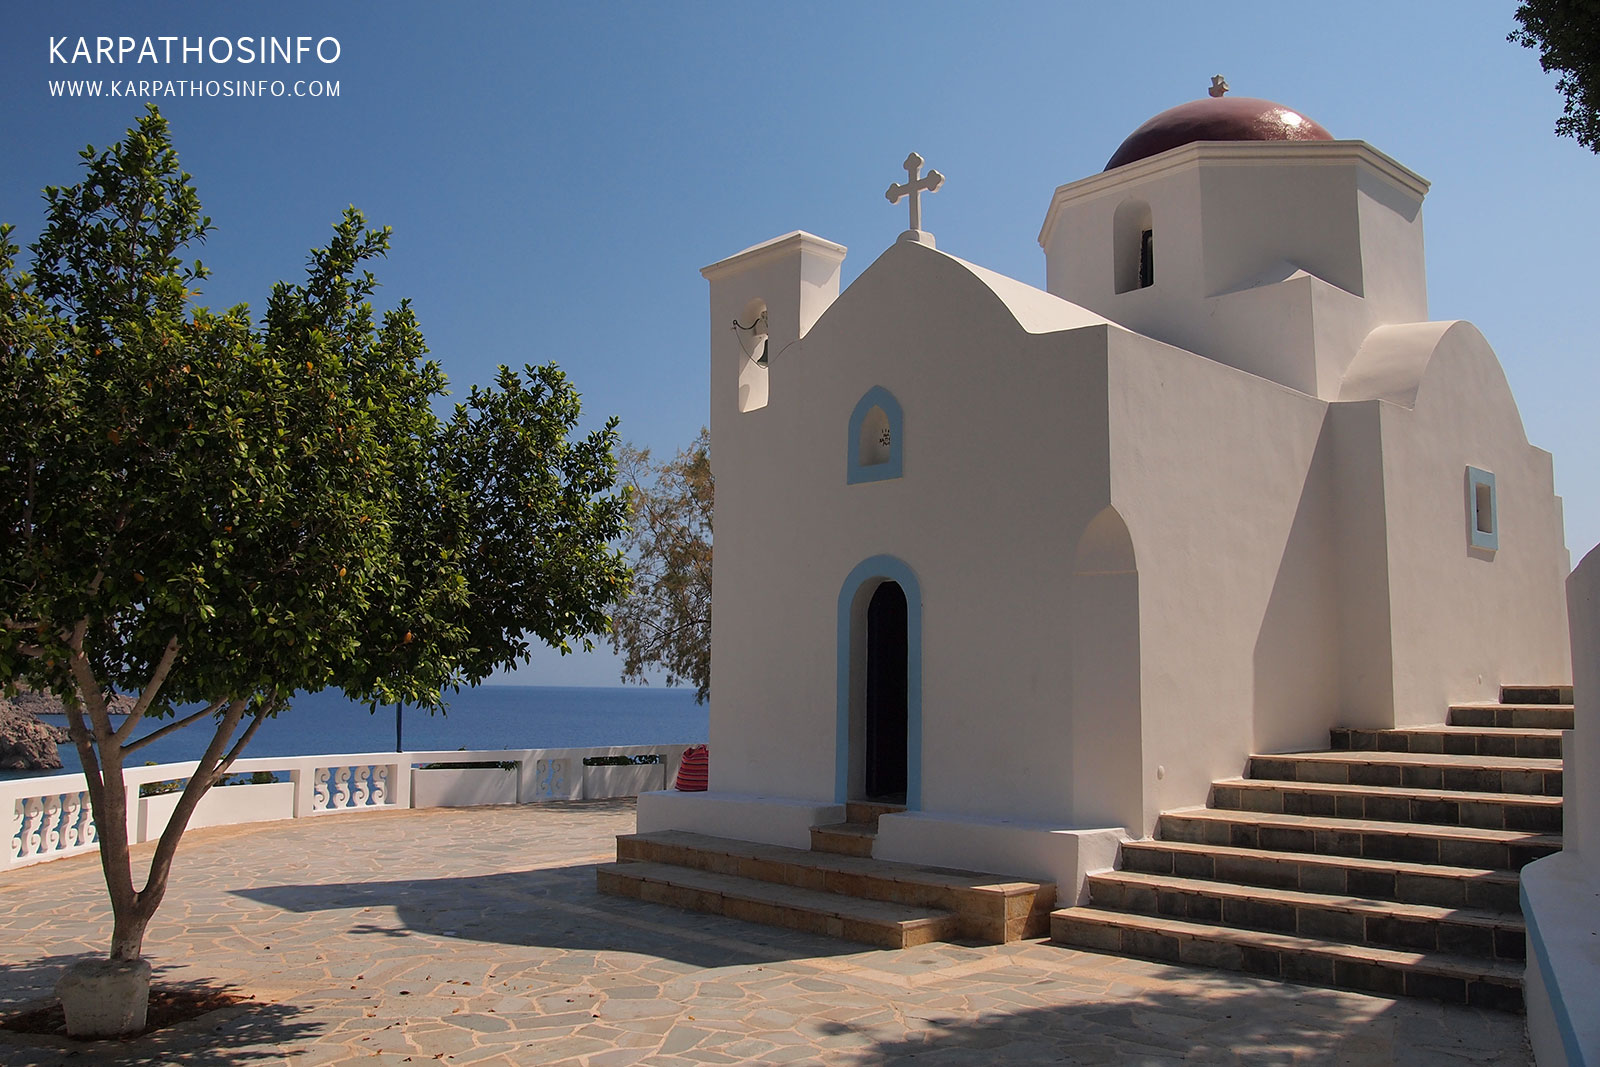 Karpathos church